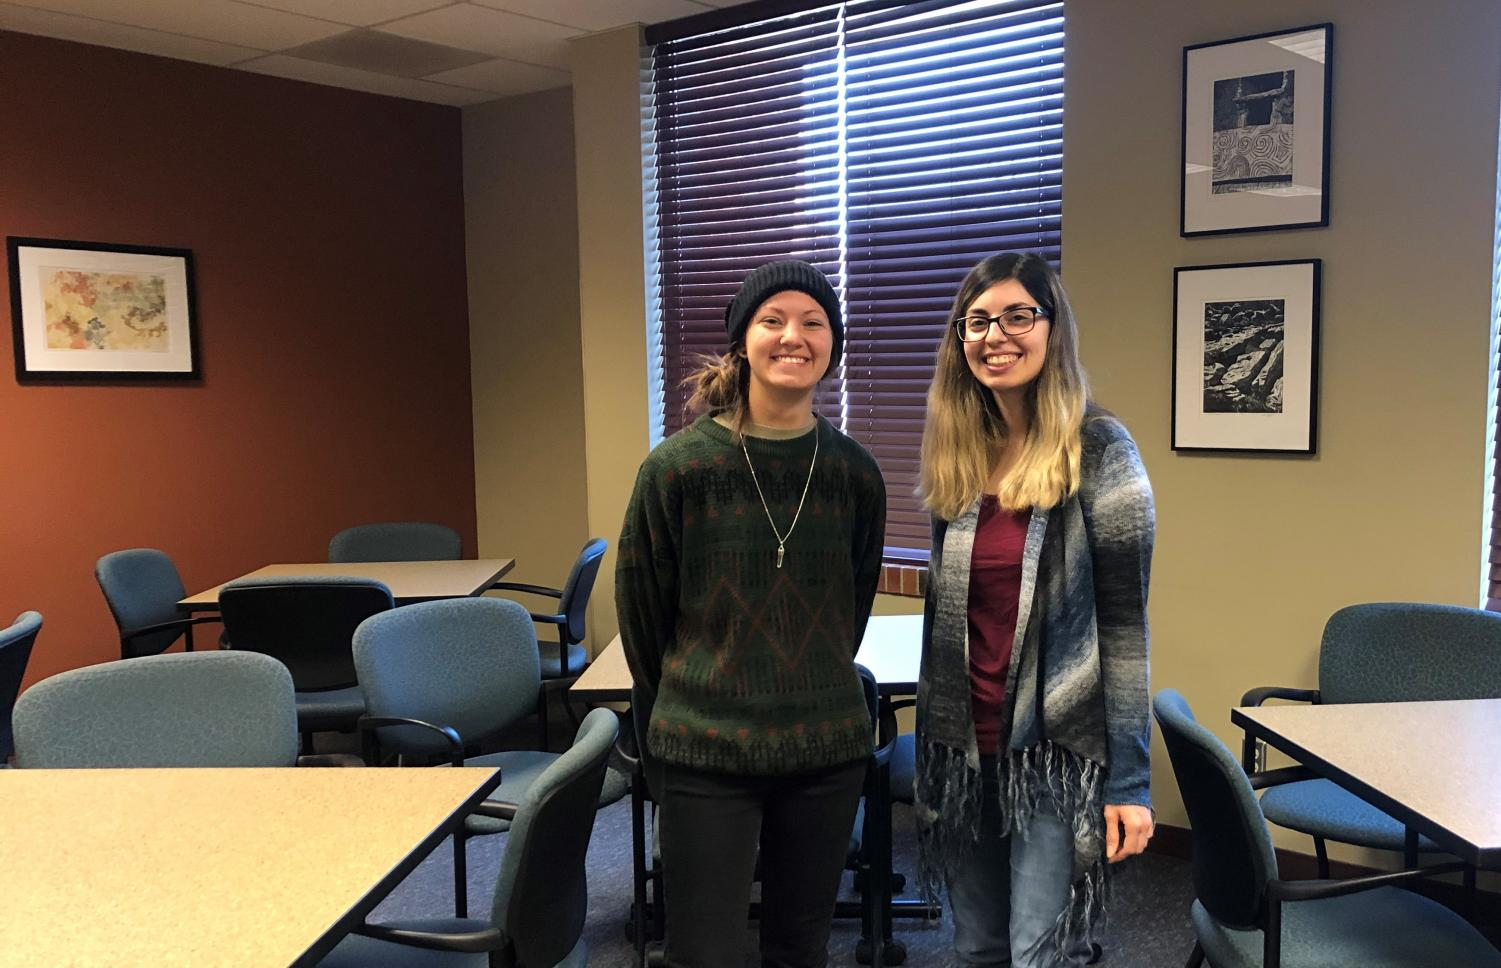 GREENadiers President Sidney Farmer (left) and Vice President Lucia Rodriguez at the club's first meeting on Wednesday, Jan. 22.